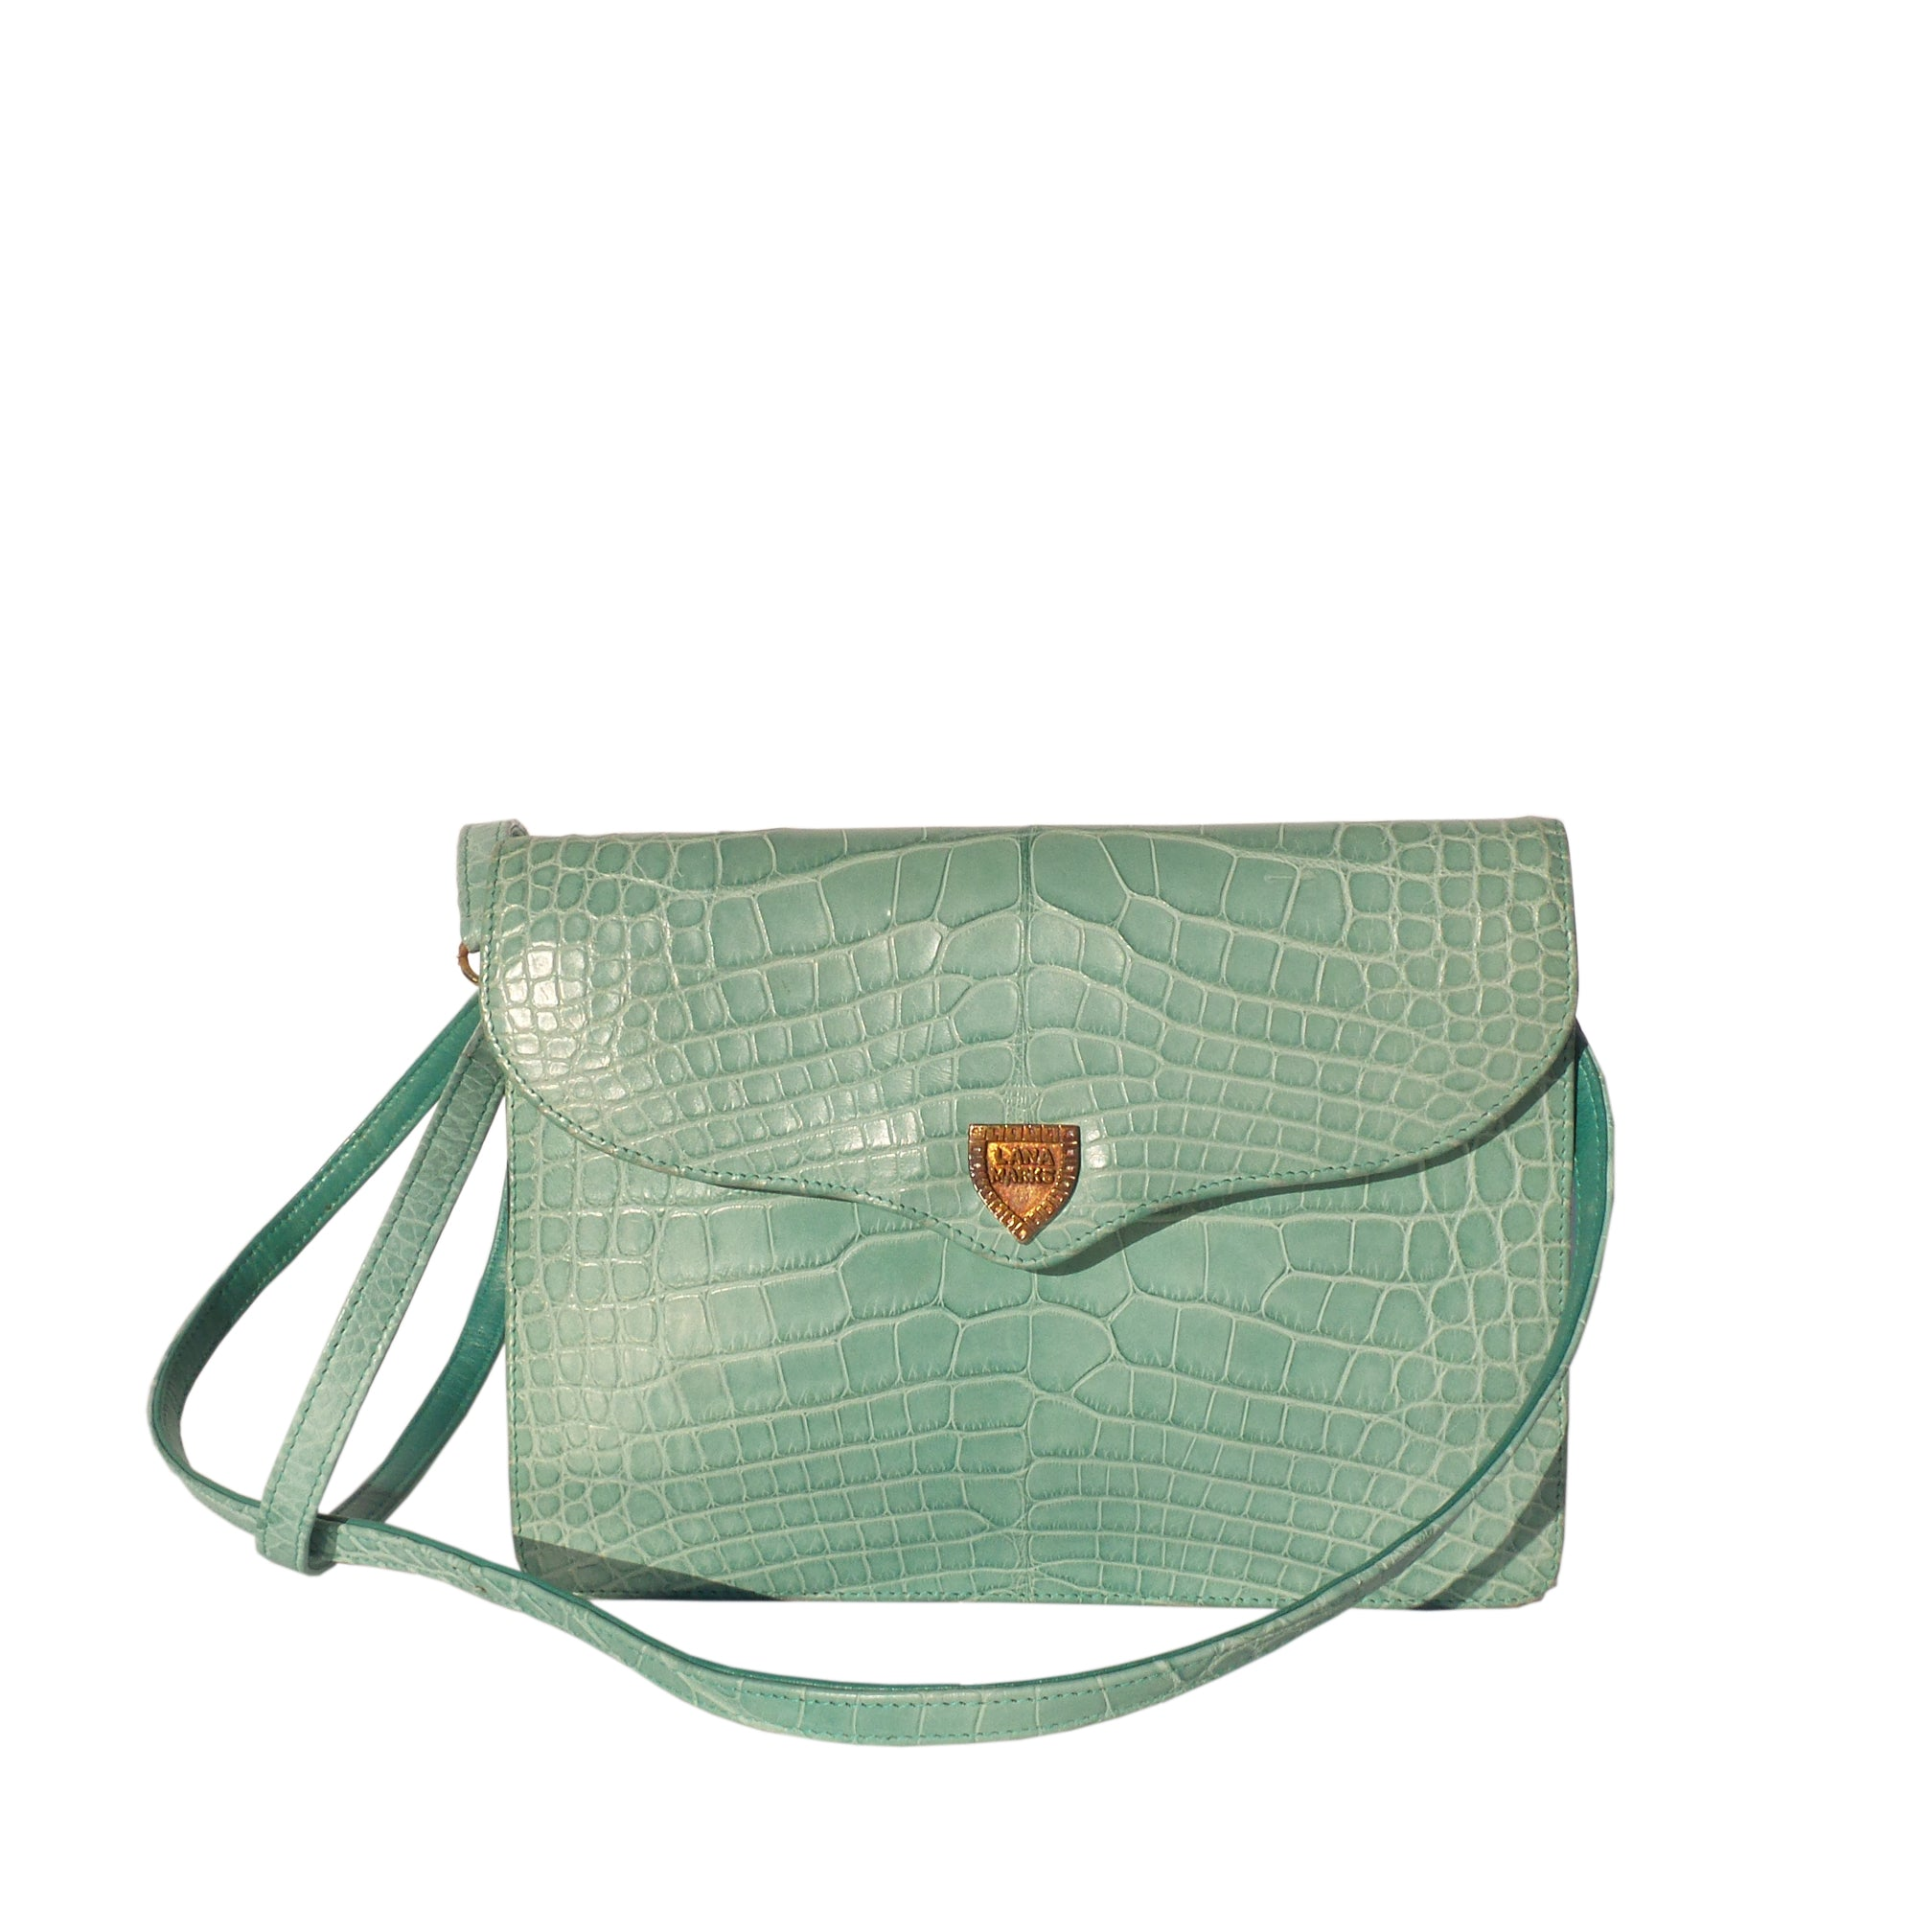 'Sold' LANA MARKS Aqua Mint Crocodile Alligator Envelope Flap Shoulder Bag Clutch VTG